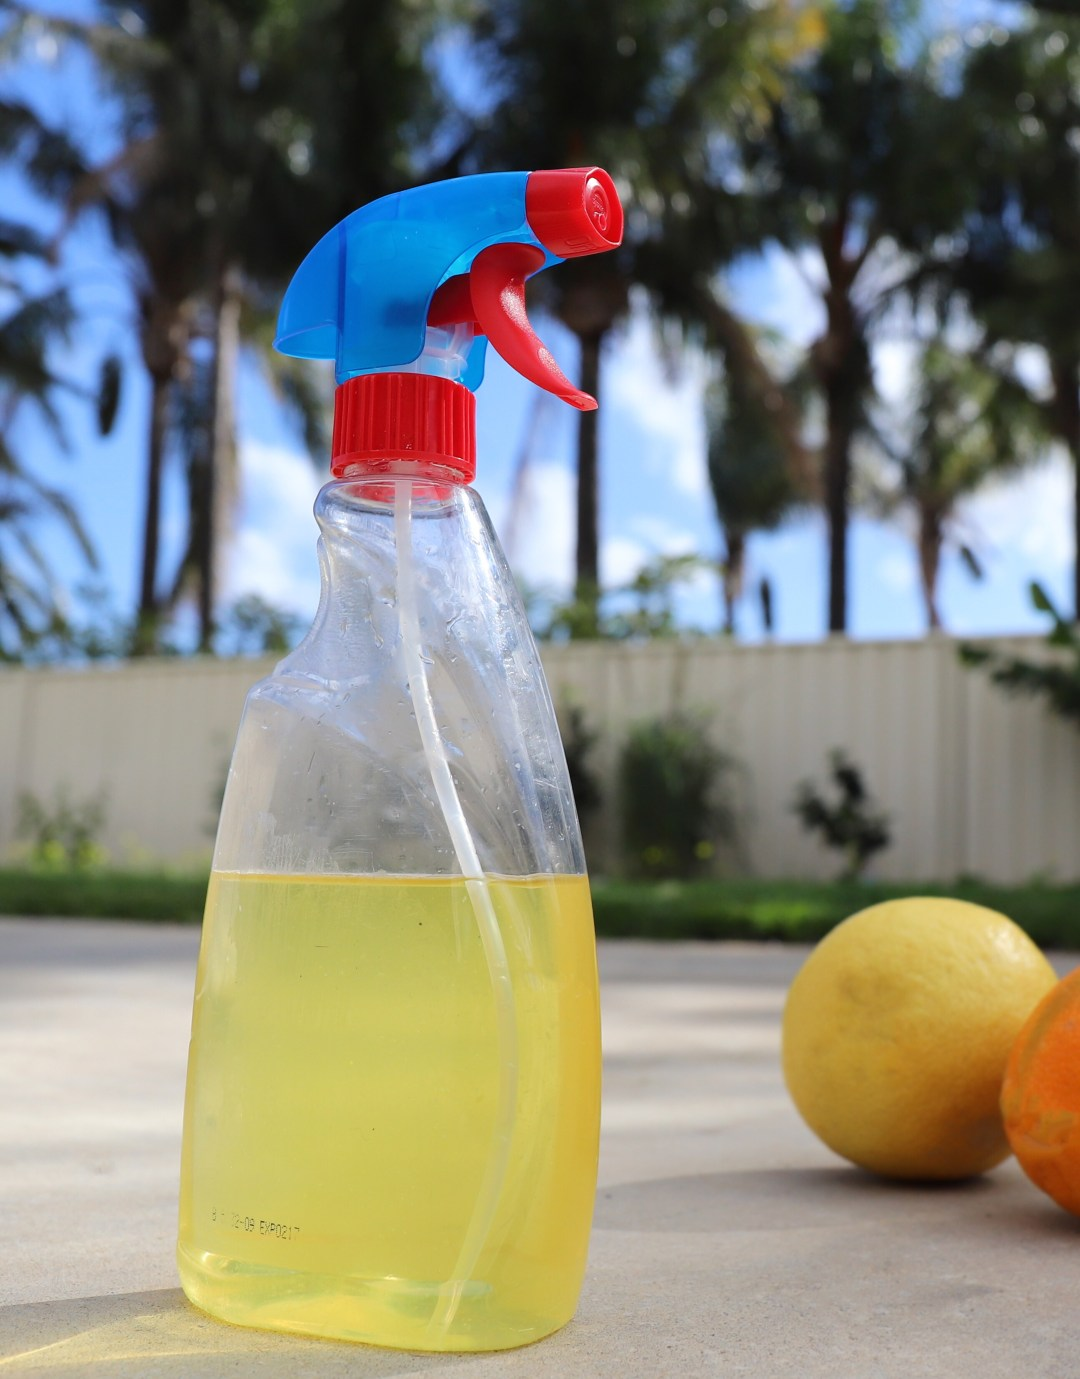 DIY Citrus Cleaner